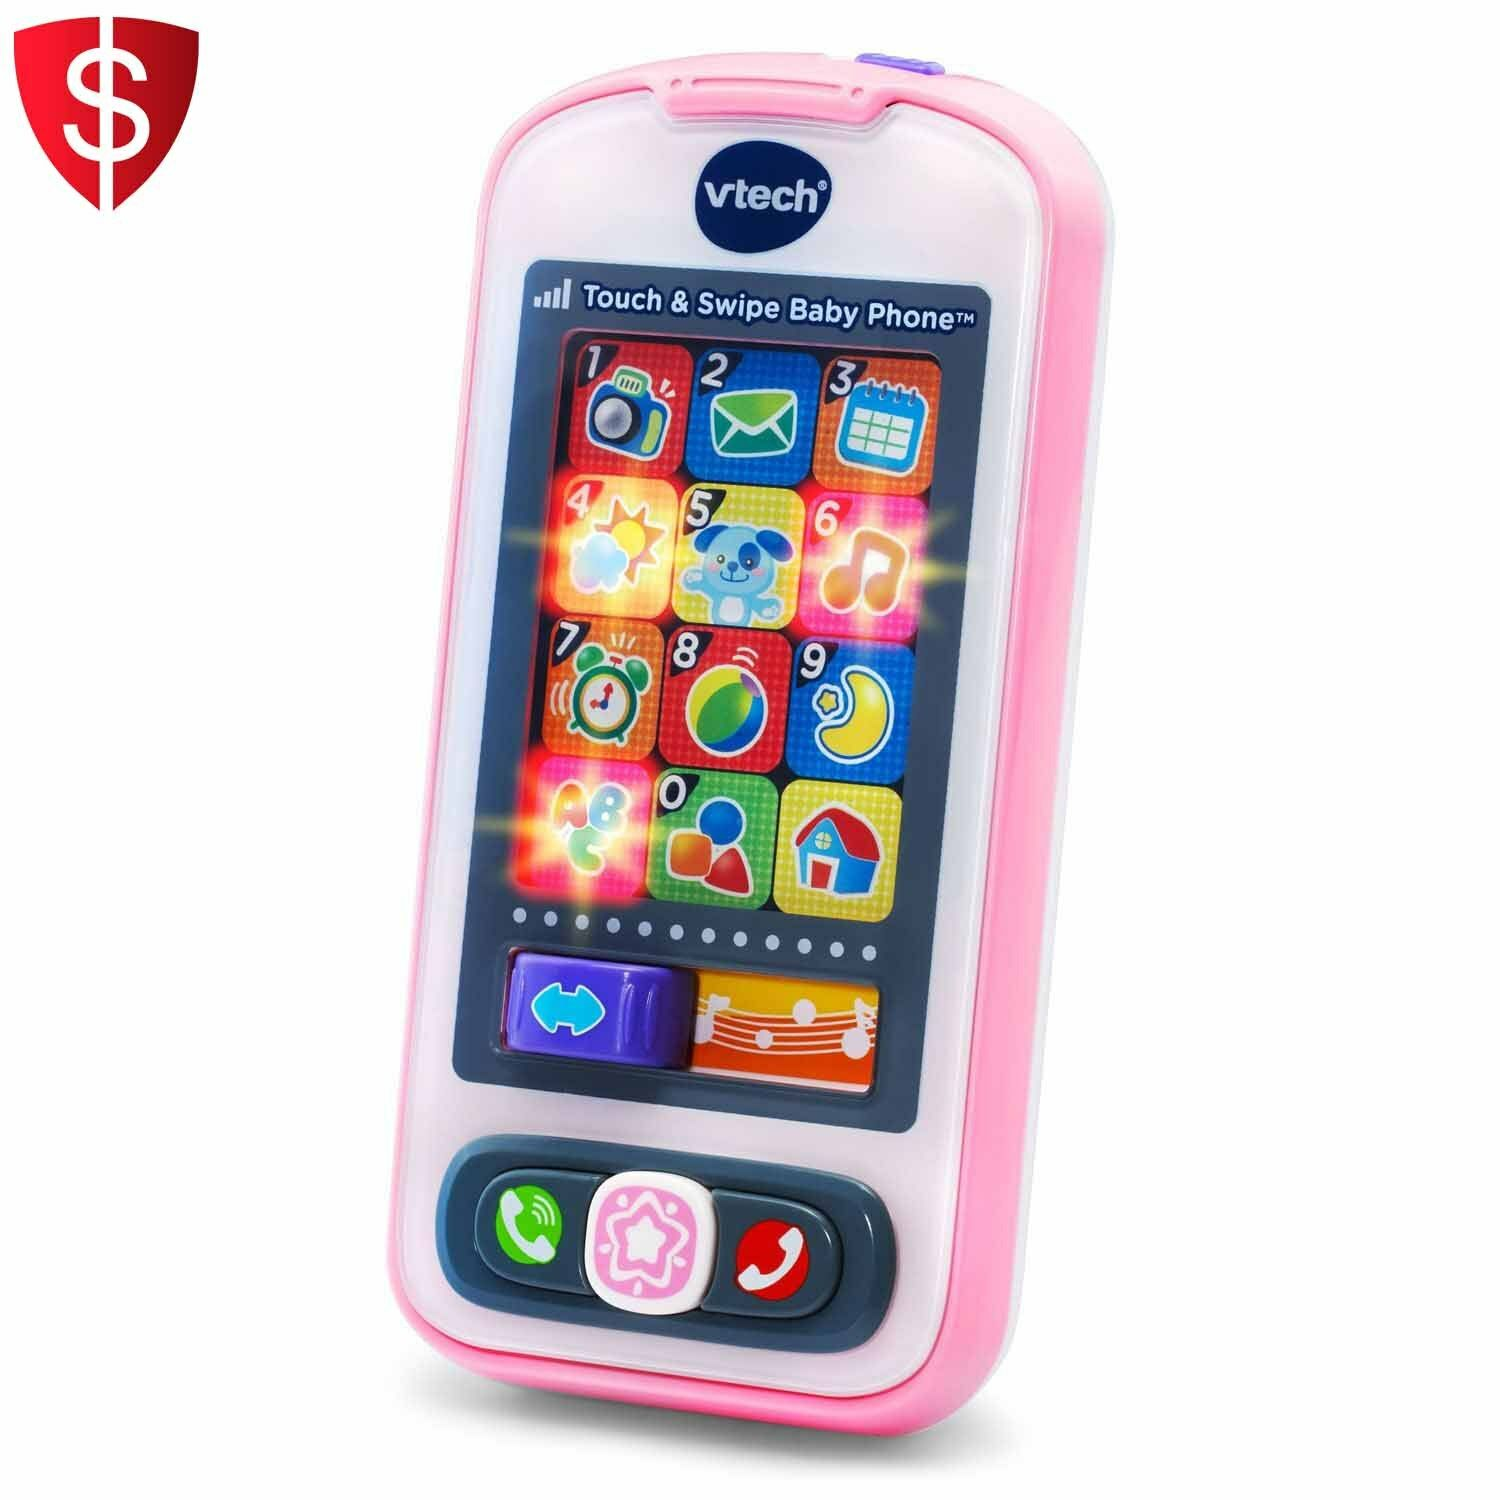 $17.62 - Kids Toy Cell Phone Baby Girl Learning Education Play Musical Mobile Children